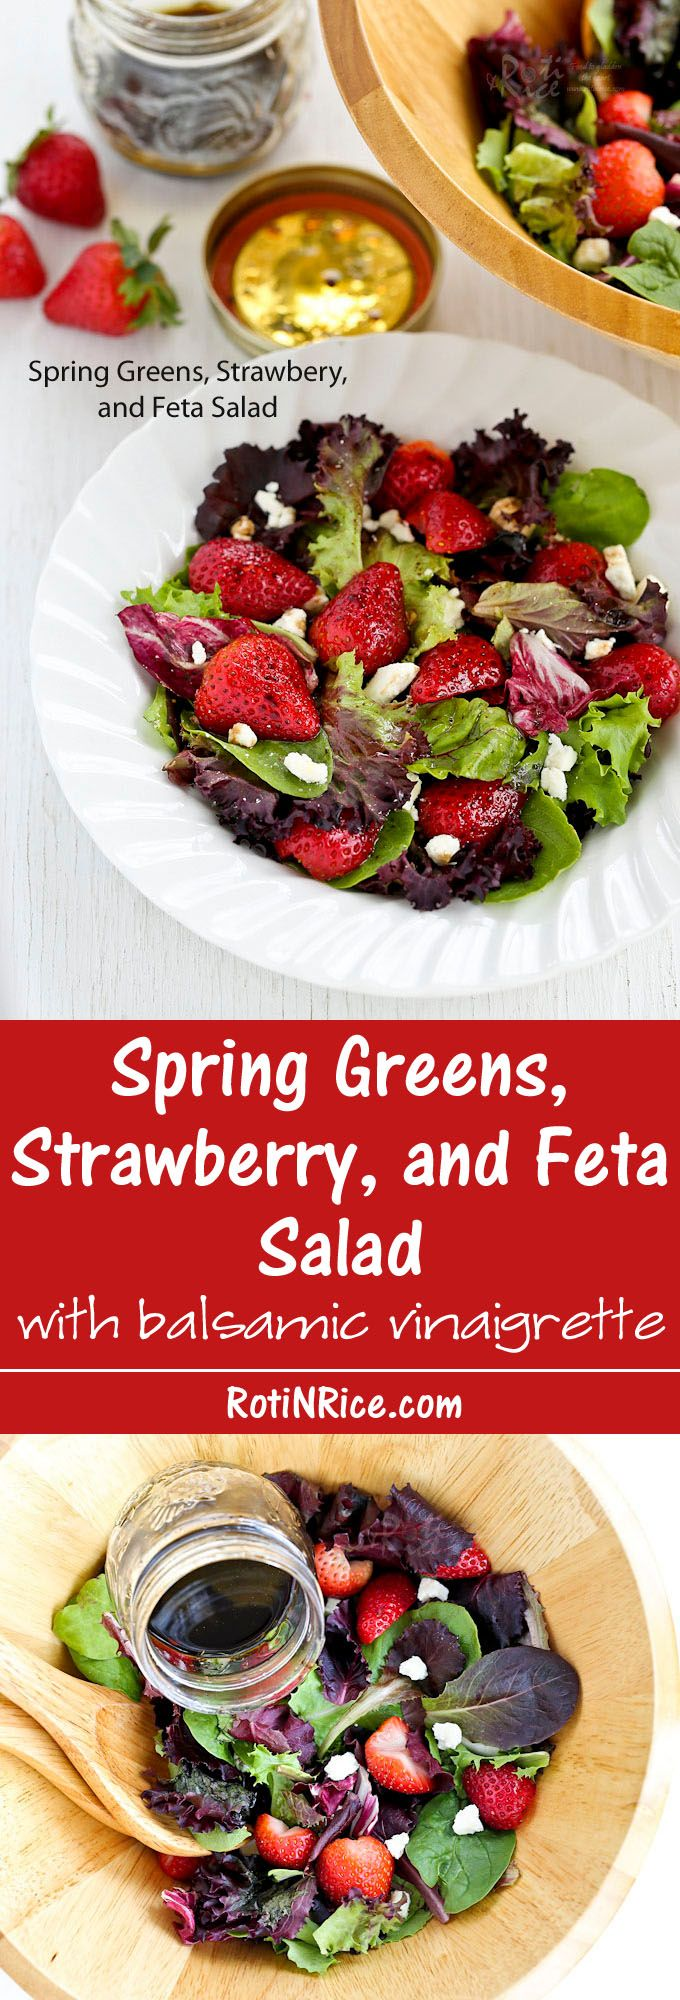 This Spring Greens, Strawberry, and Feta Salad with balsamic vinaigrette has a sweet salty combination that is sure to tease the taste buds.   Food to gladden the heart at RotiNRice.com